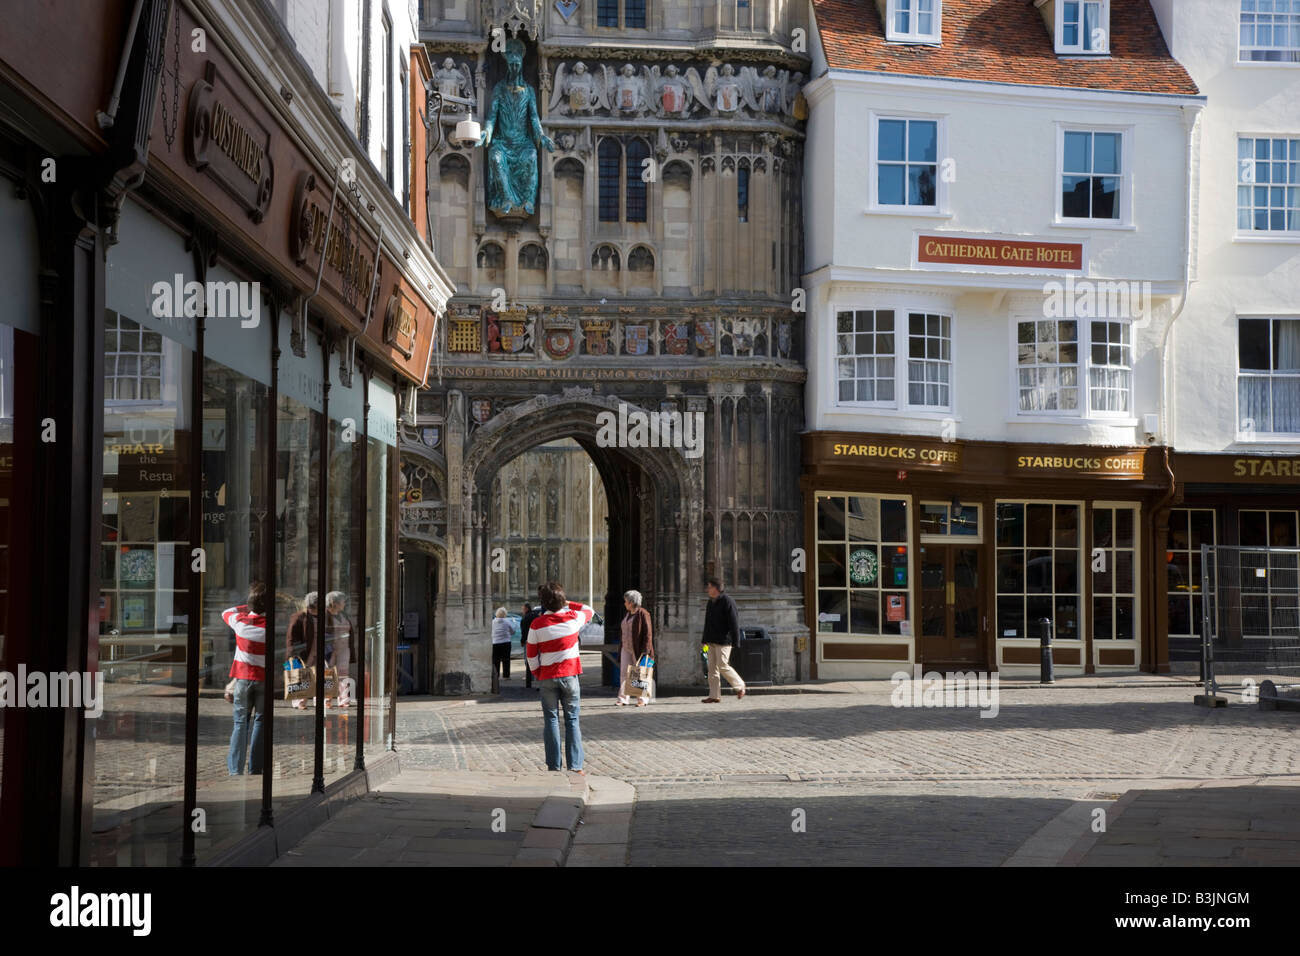 Delightful Tourists Congregating Outside The Gated Entrance To Canterbury Cathedral